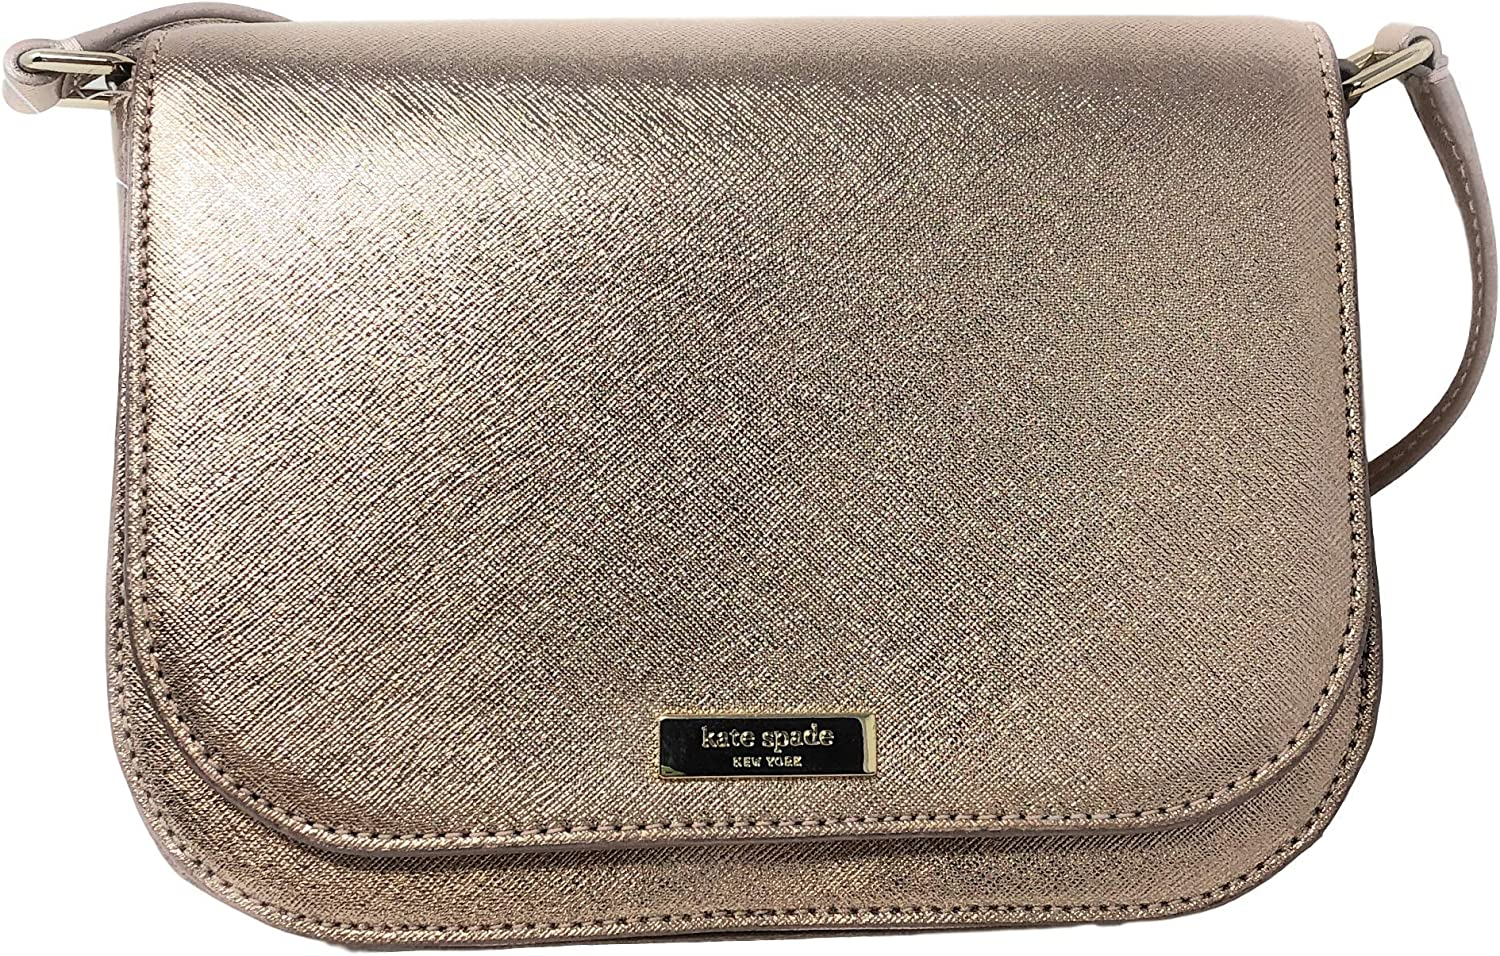 Kate Spade New York Large Carsen Laurel Way Leather Crossbody Bag in Rose Gold